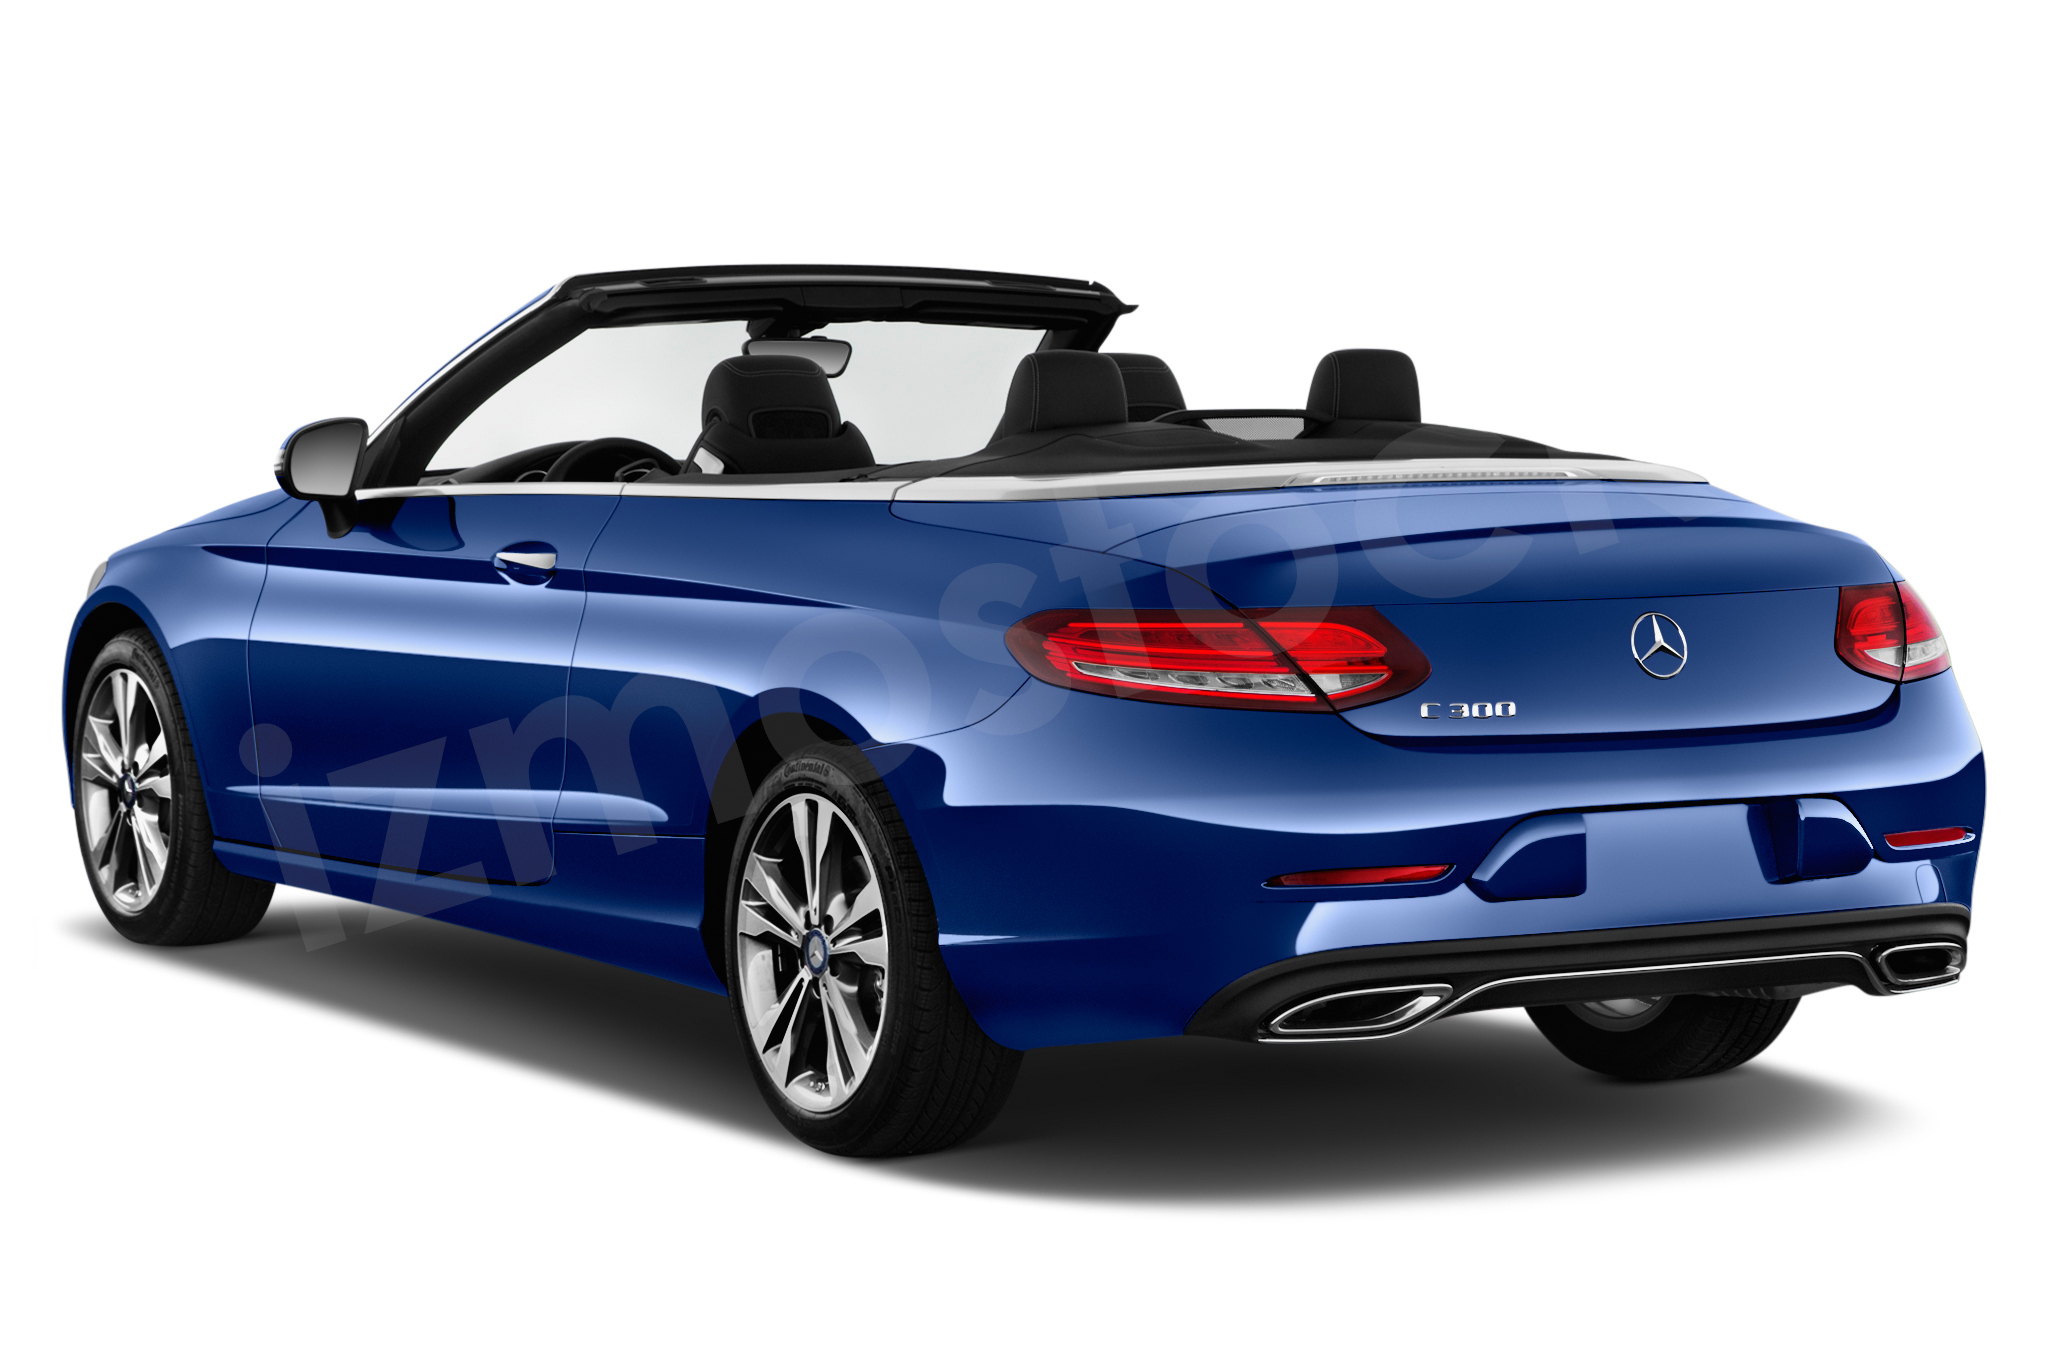 2017 mercedes benz c300 cabriolet review izmostock for 2017 mercedes benz c300